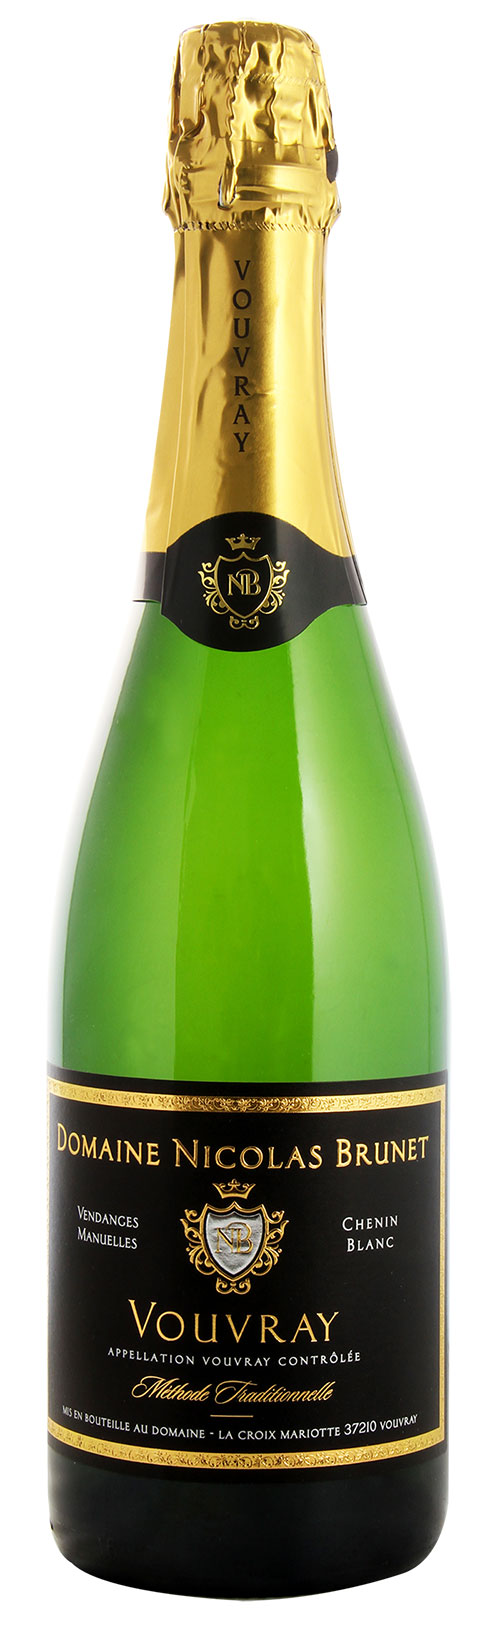 VOUVRAY AOC MÉTHODE TRADITIONNELLE BRUT 2013